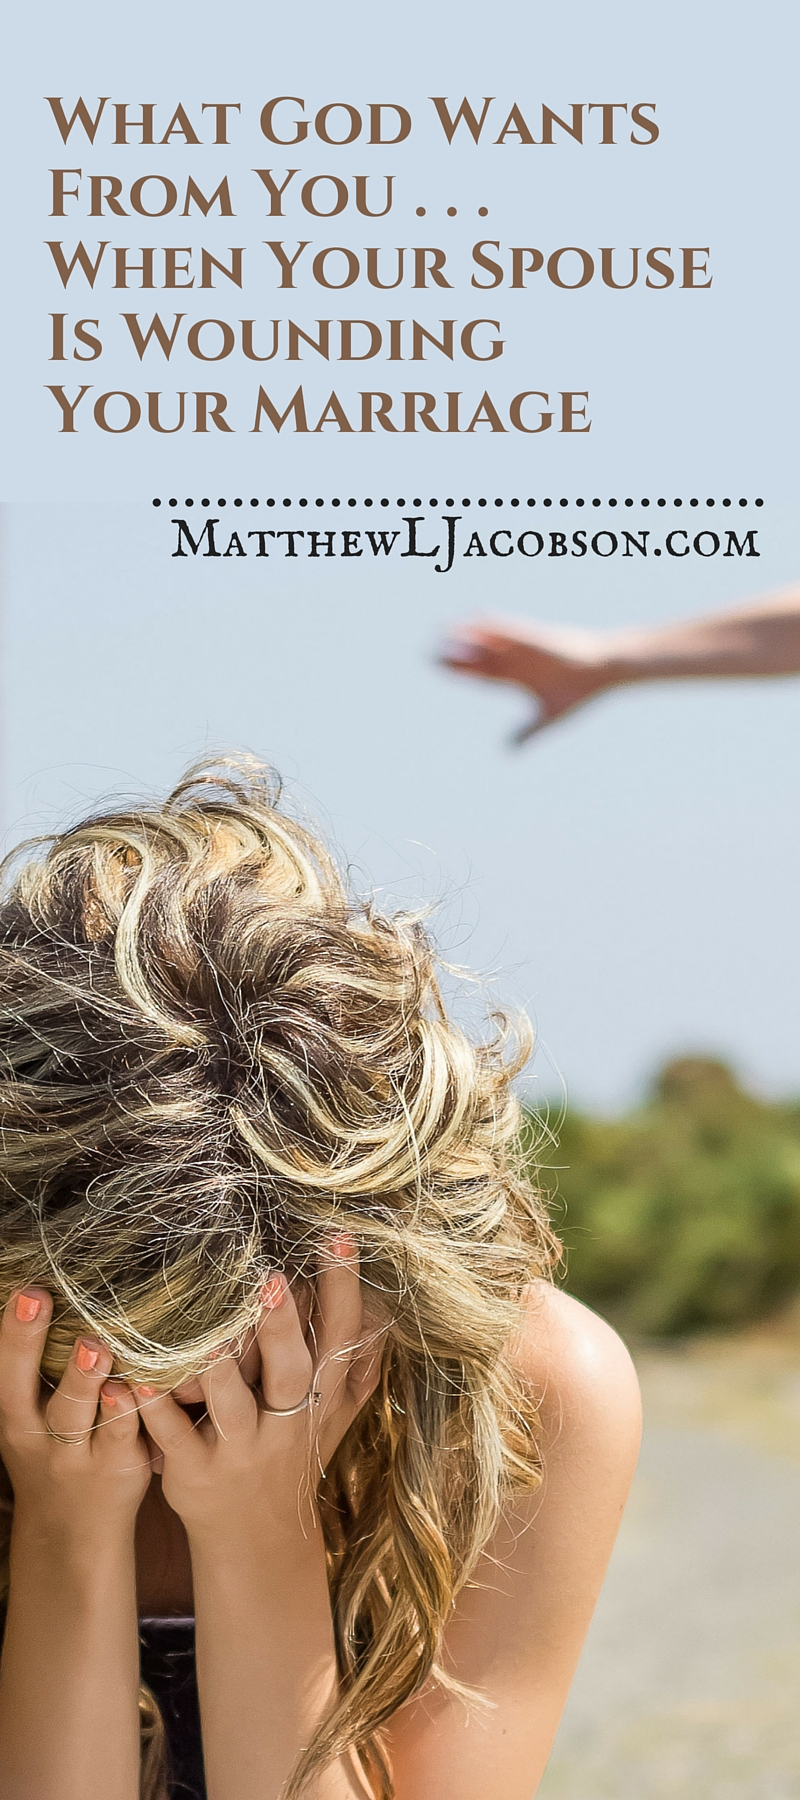 What God Wants From You When Your Spouse is Wounding Your Marriage via @faithful_man